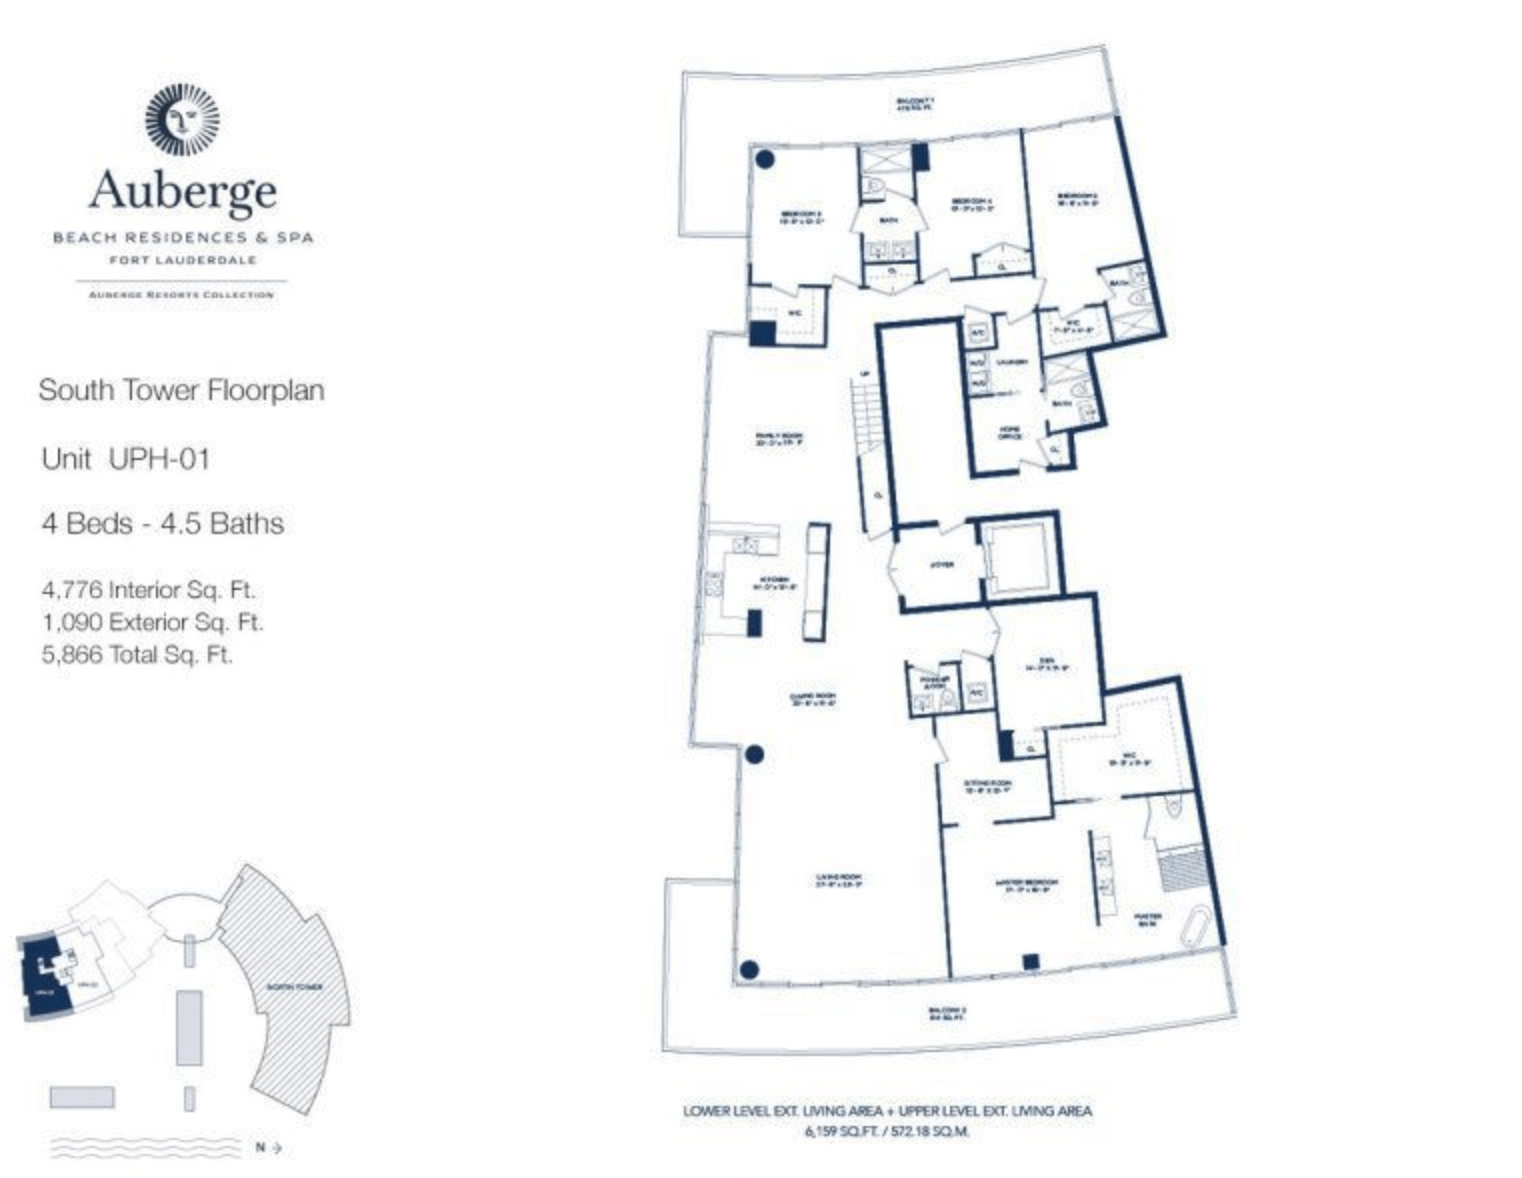 Auberge Beach Residences South Tower UPH 01 | 4 Beds - 4.5 baths